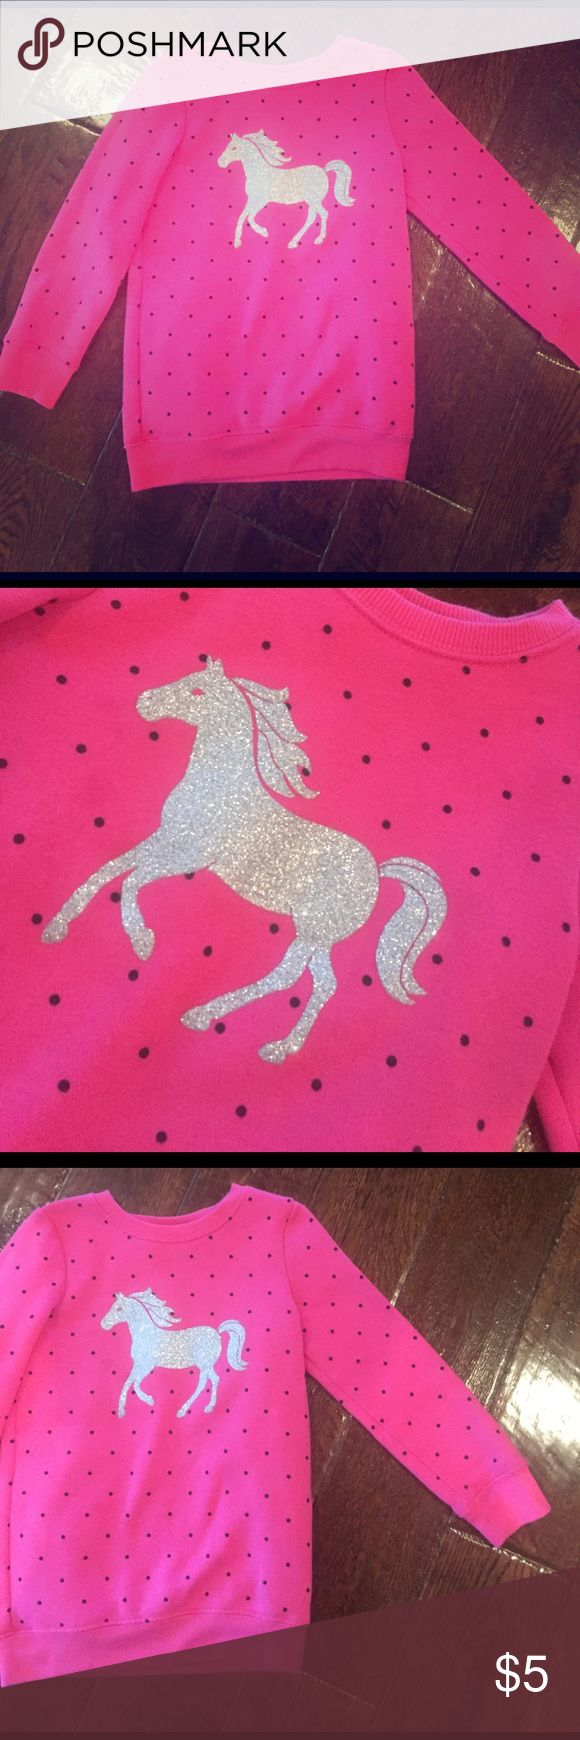 Girls Horse Sweatshirt Pink sweatshirt with glittery silver horse and black polka dots, Jumping Beans size 4T Shirts & Tops Sweatshirts & Hoodies